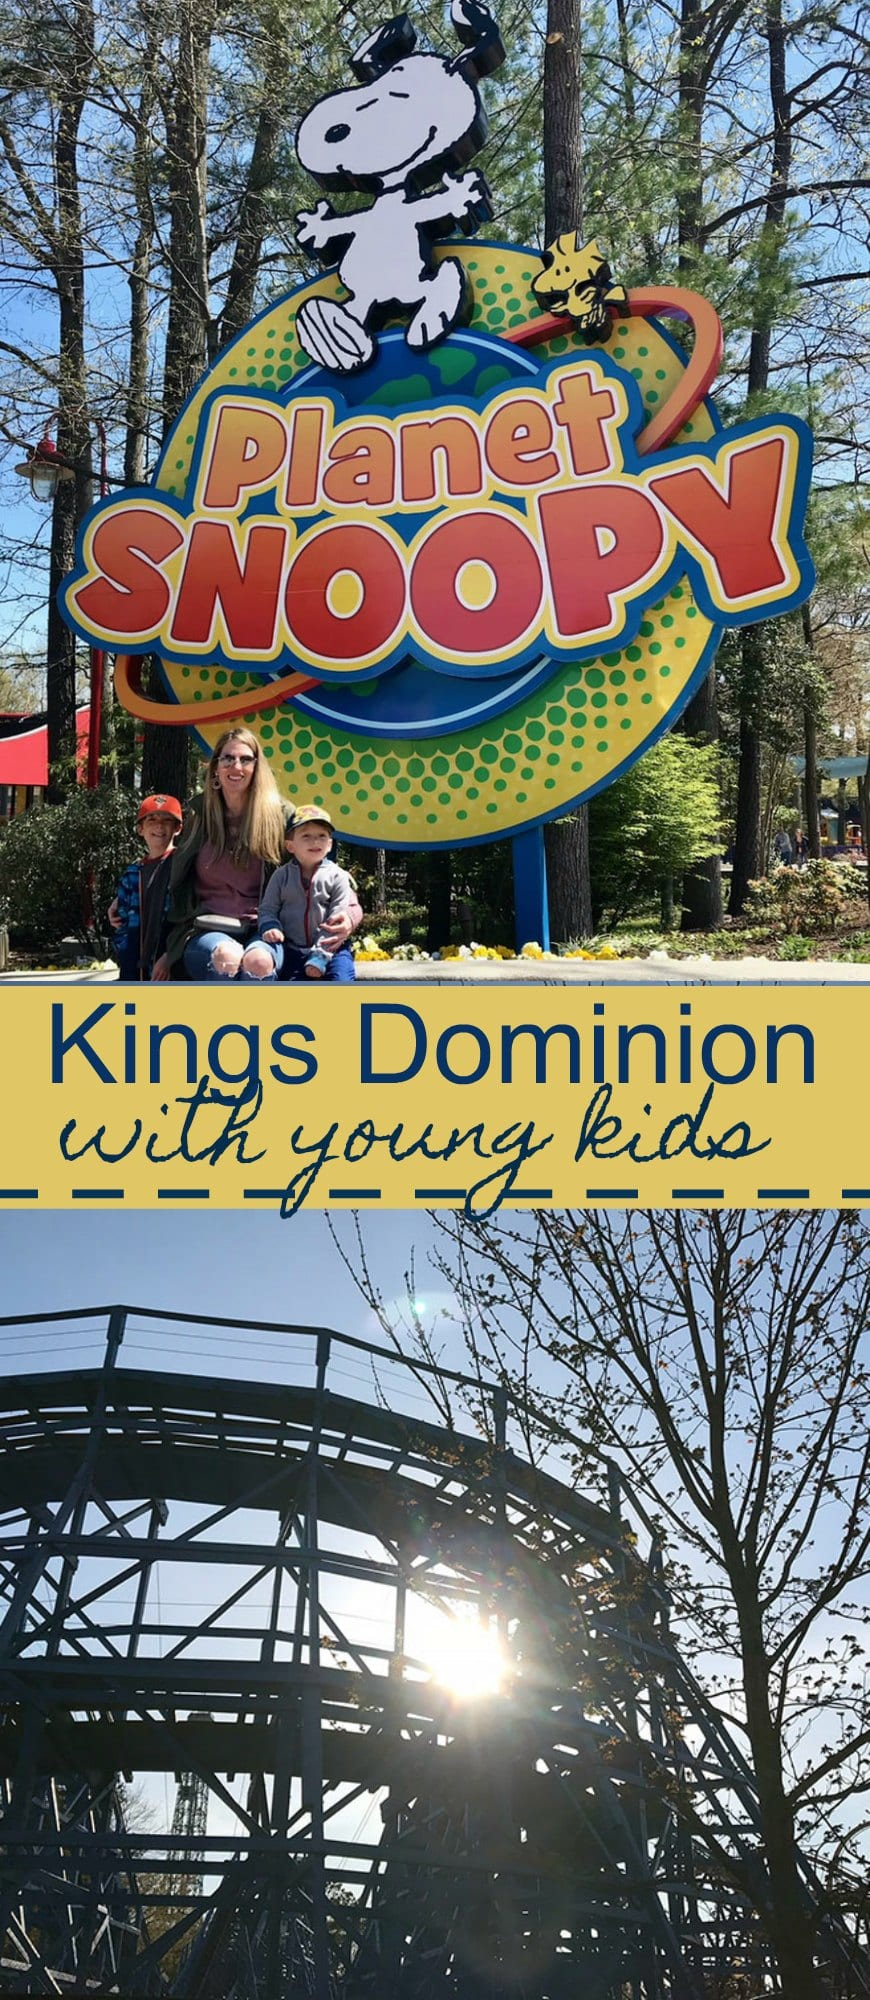 Kings Dominion with young kids